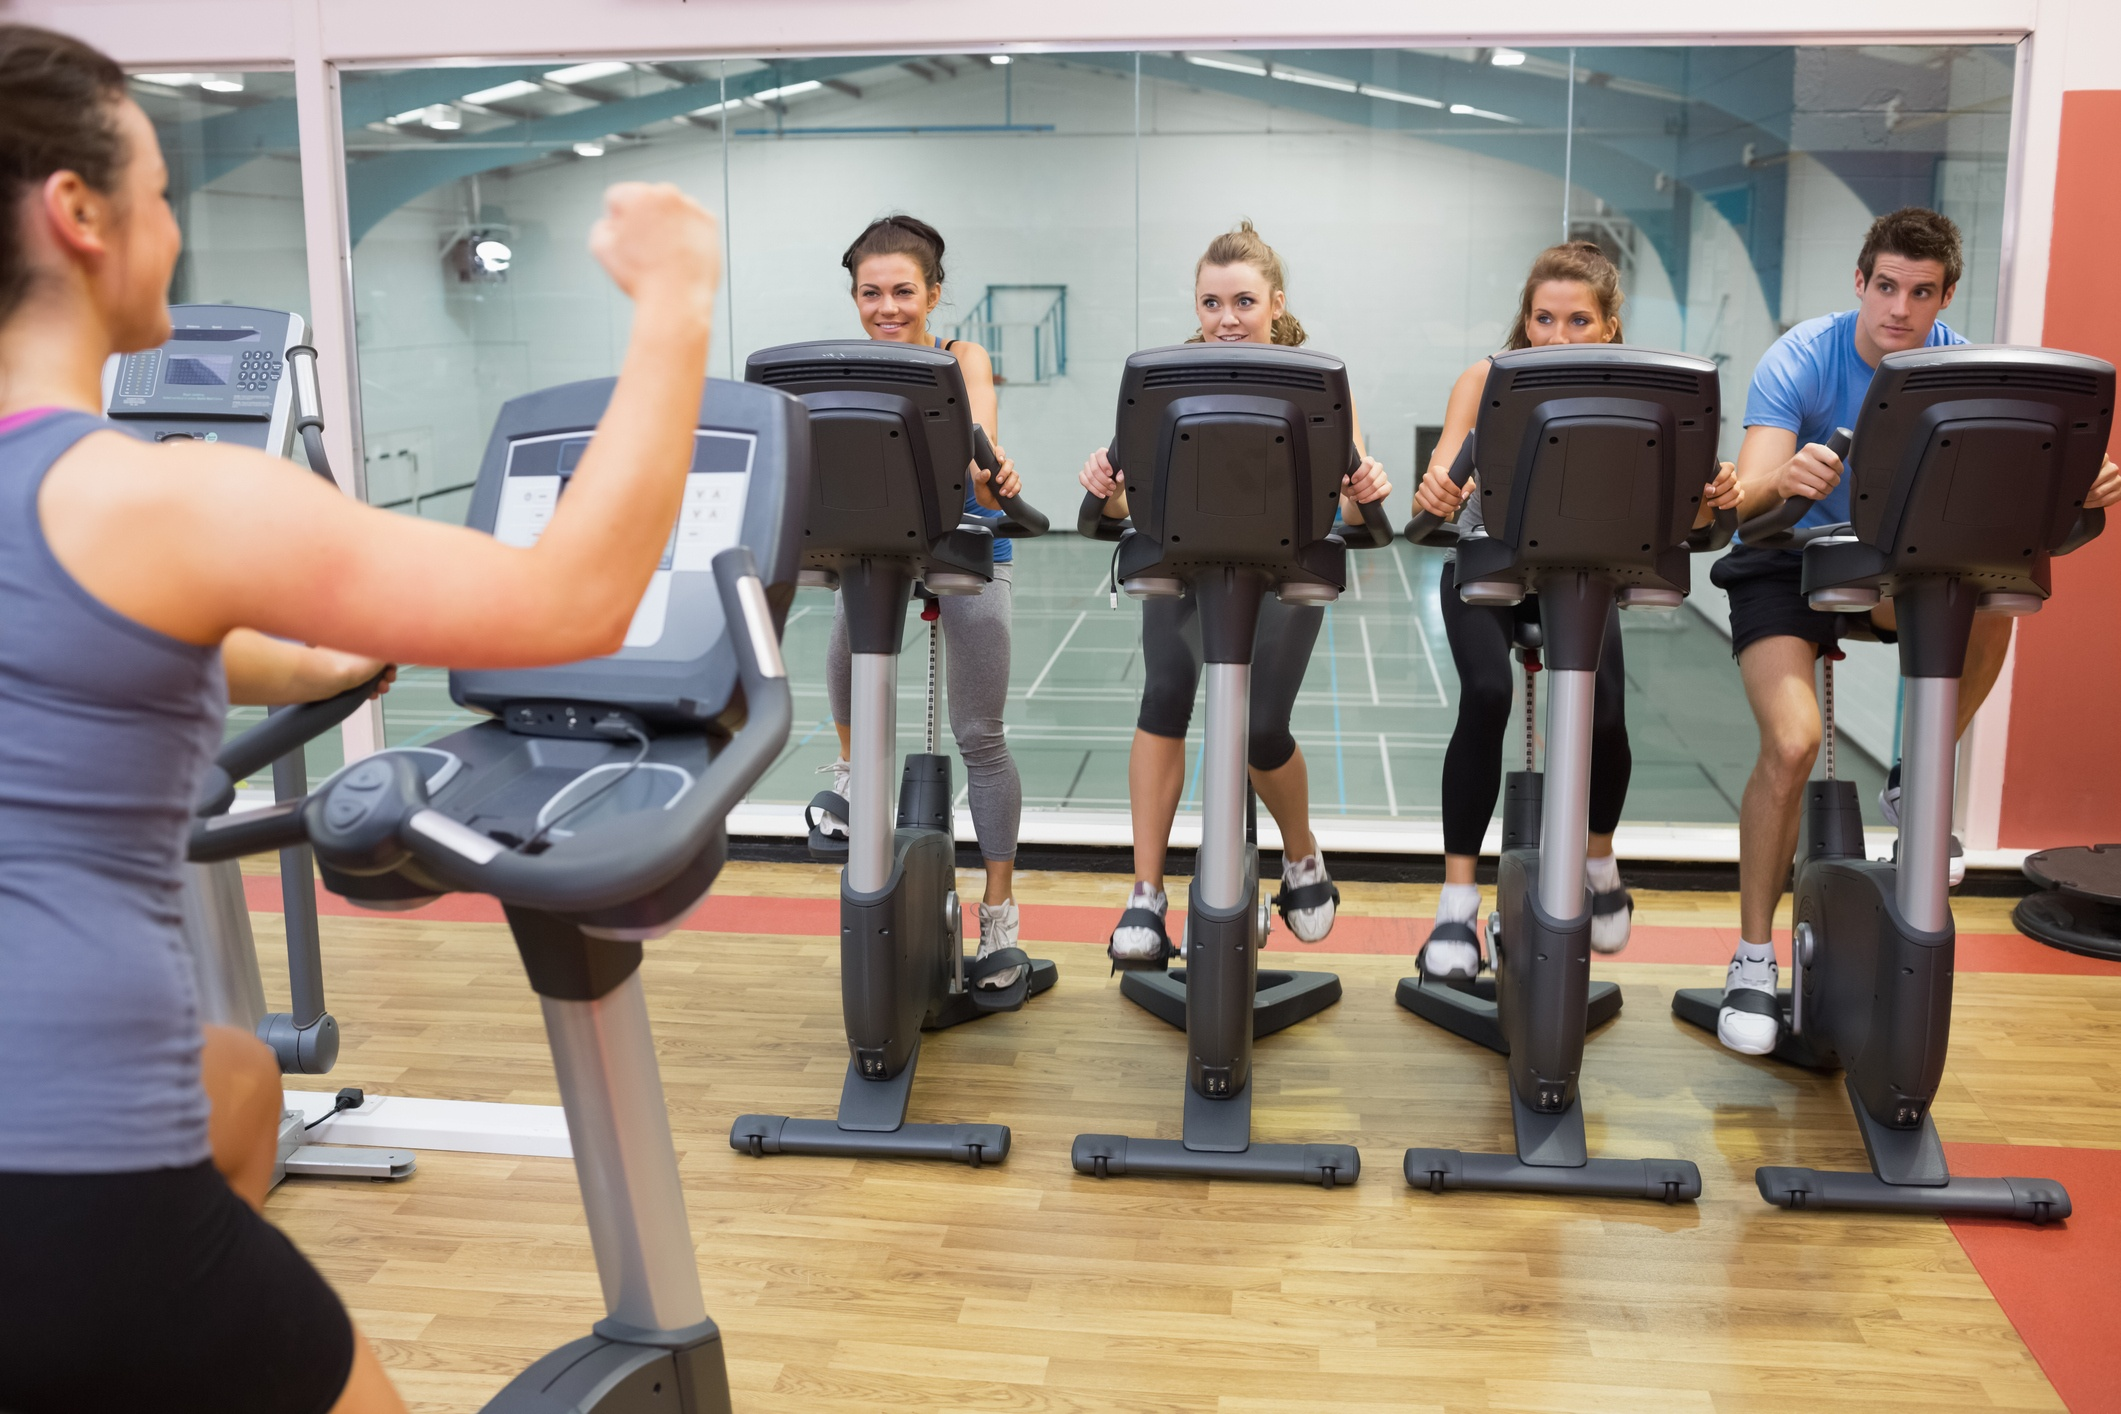 January is a good time for fitness memberships